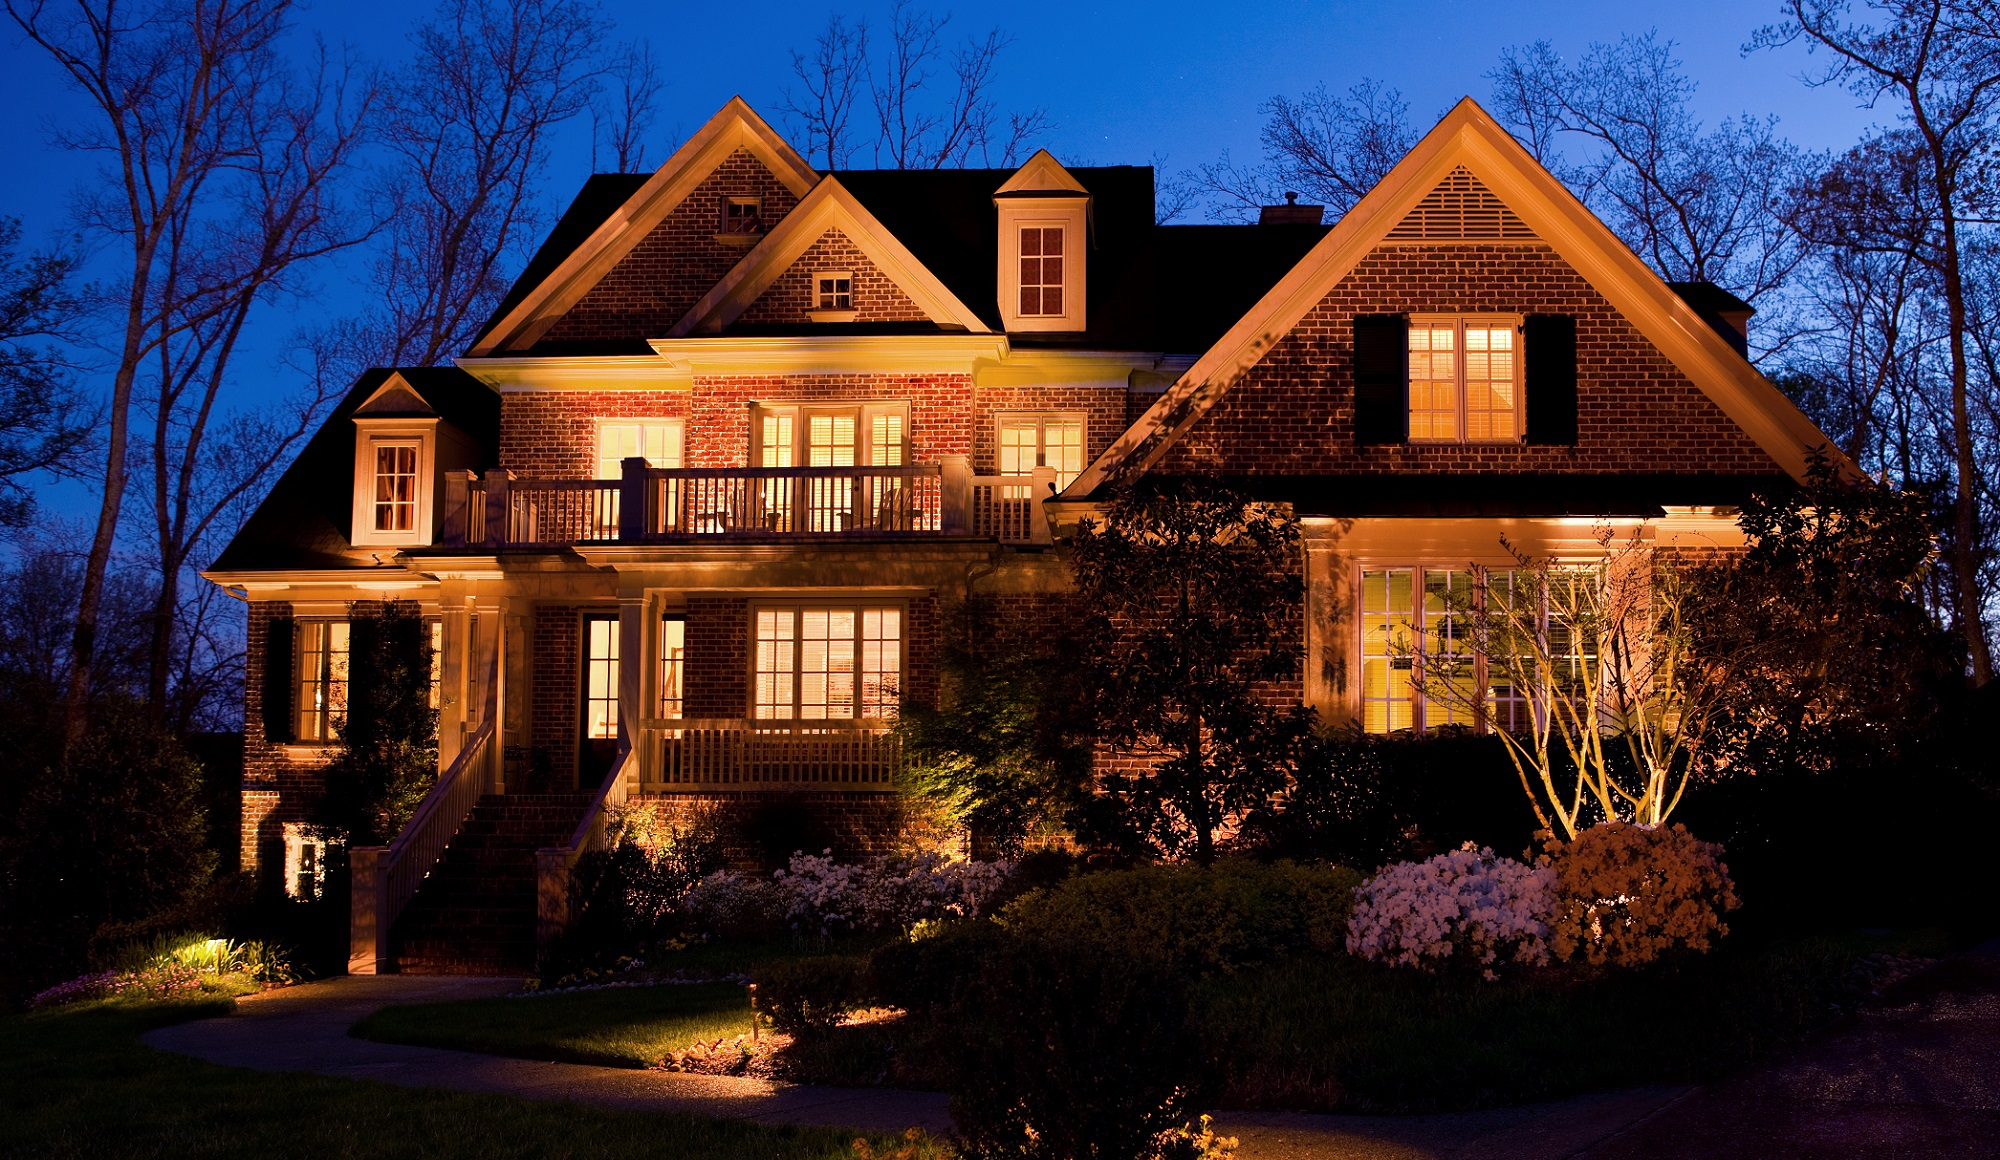 Nashville architectural lighting on Brentwood home